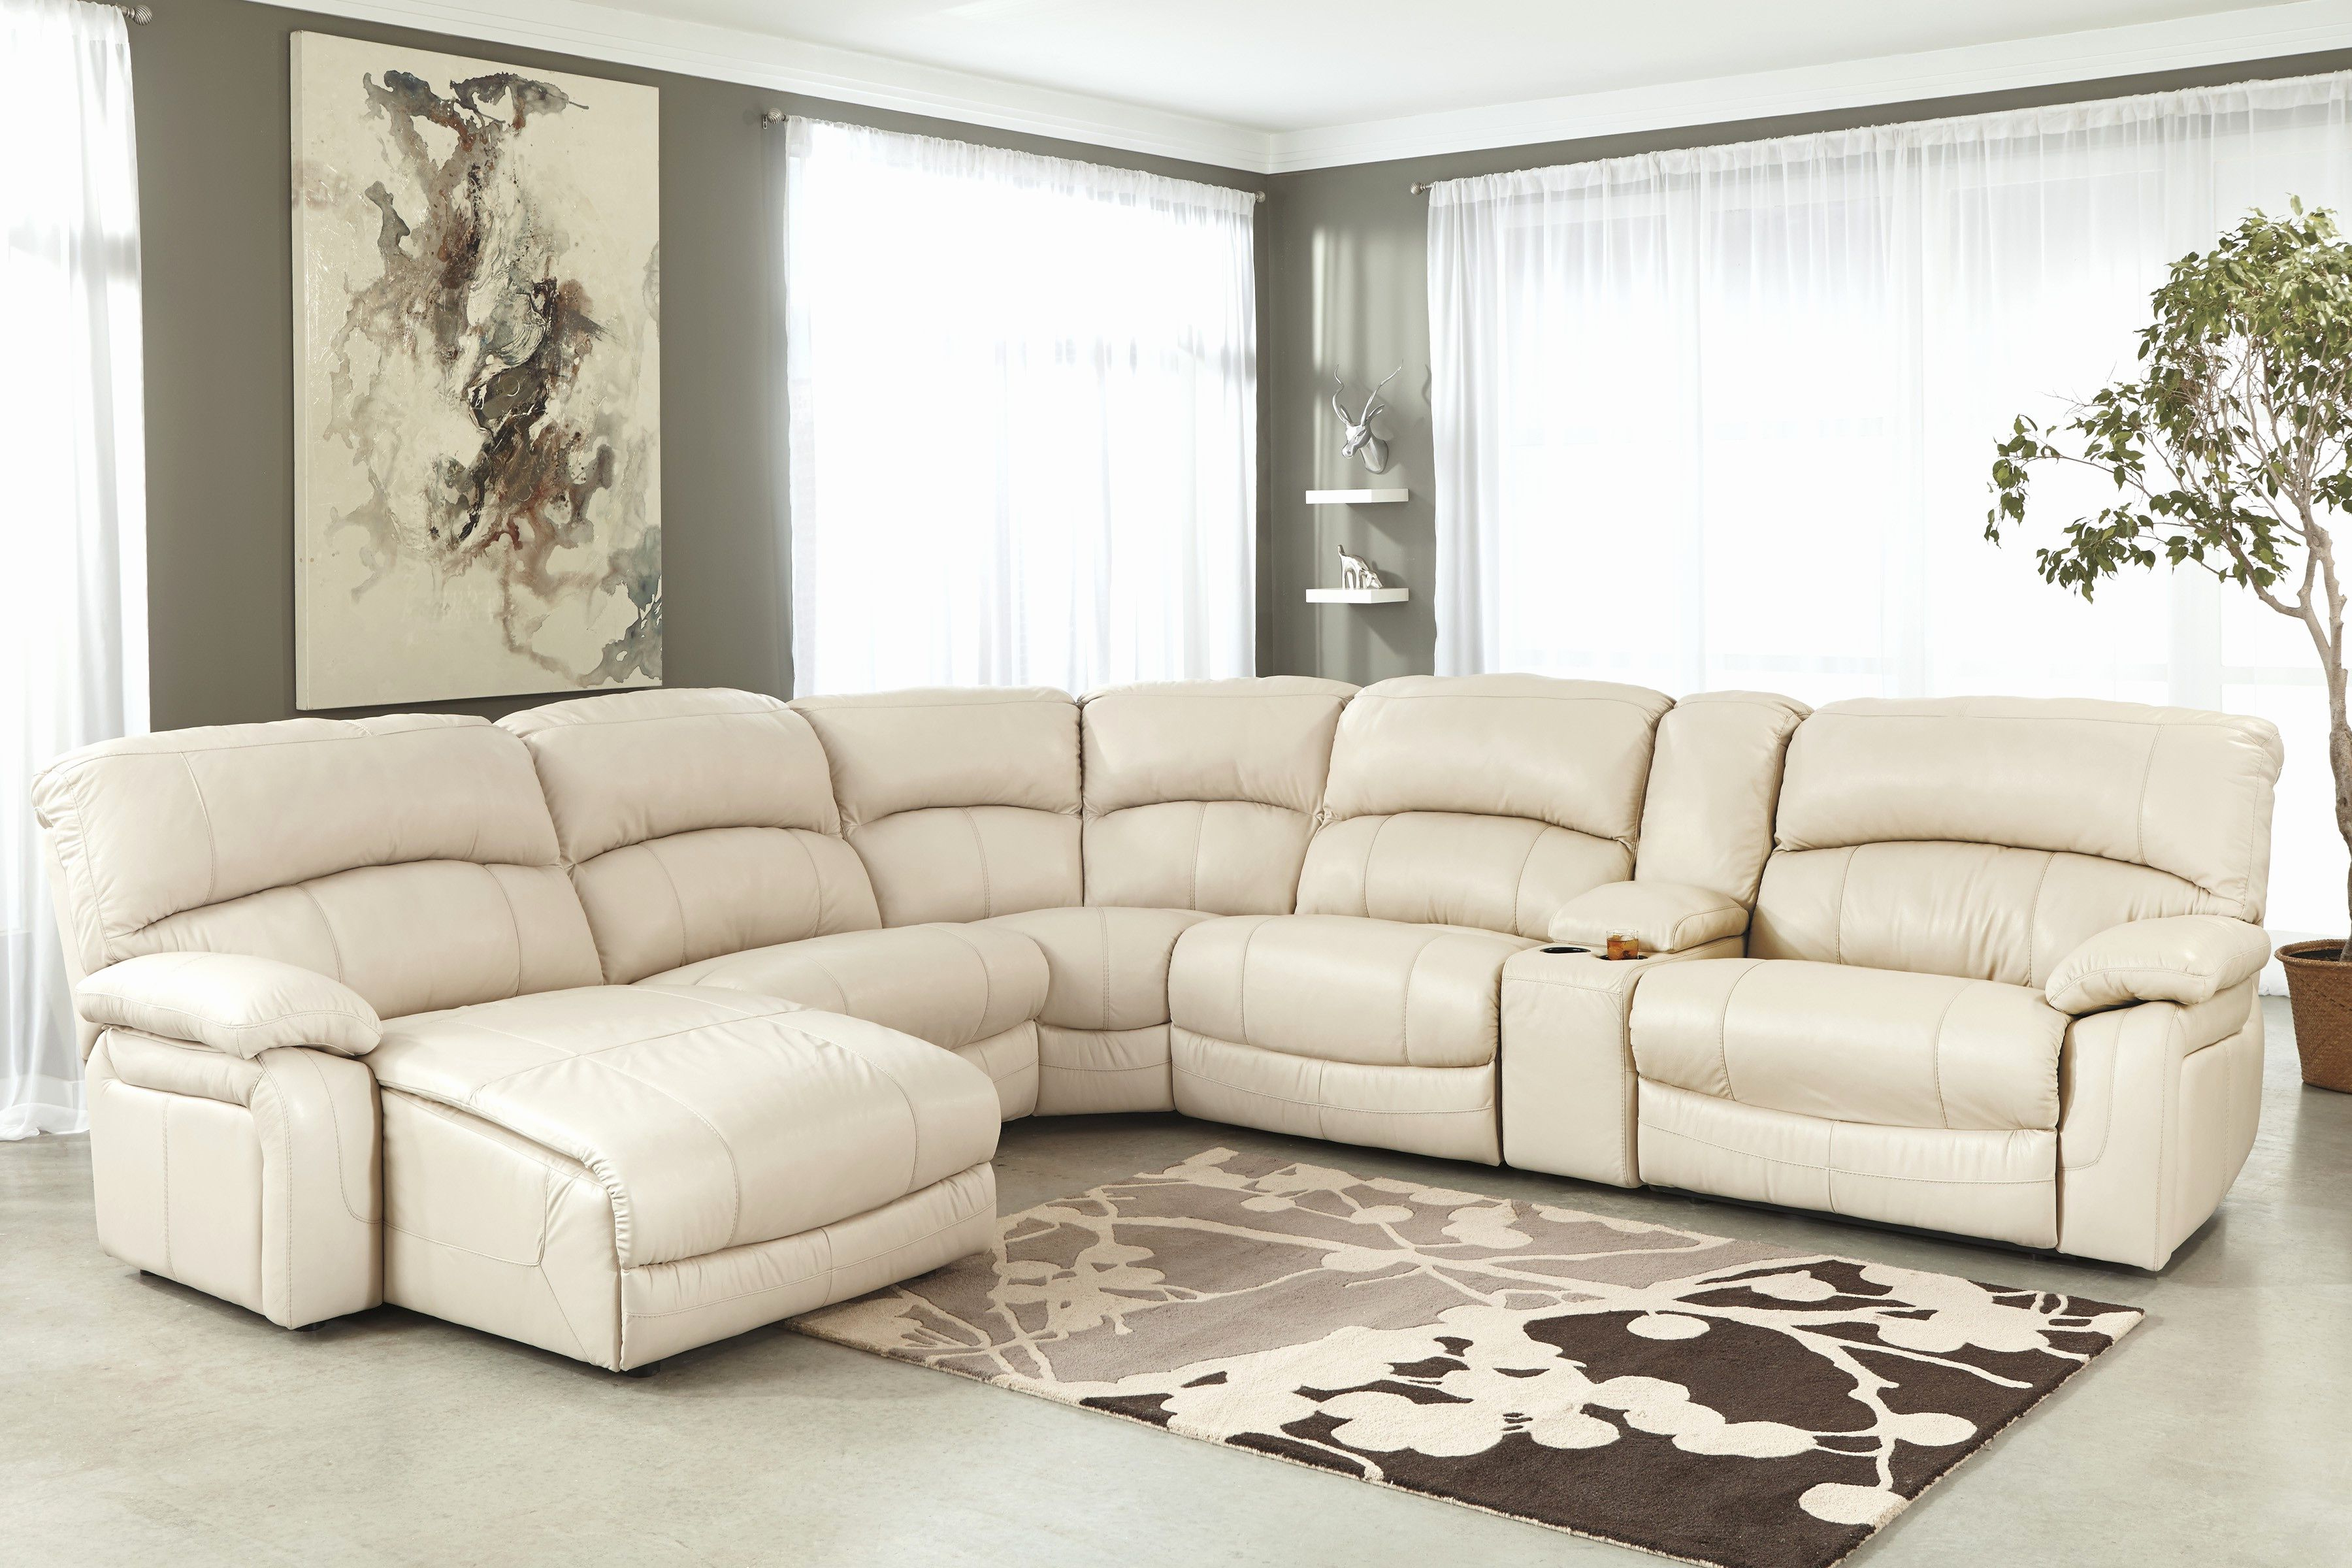 Current New Cream Sectional Sofa Pics Cream Leather Sectional Sofa With Within Marcus Chocolate 6 Piece Sectionals With Power Headrest And Usb (Gallery 6 of 20)